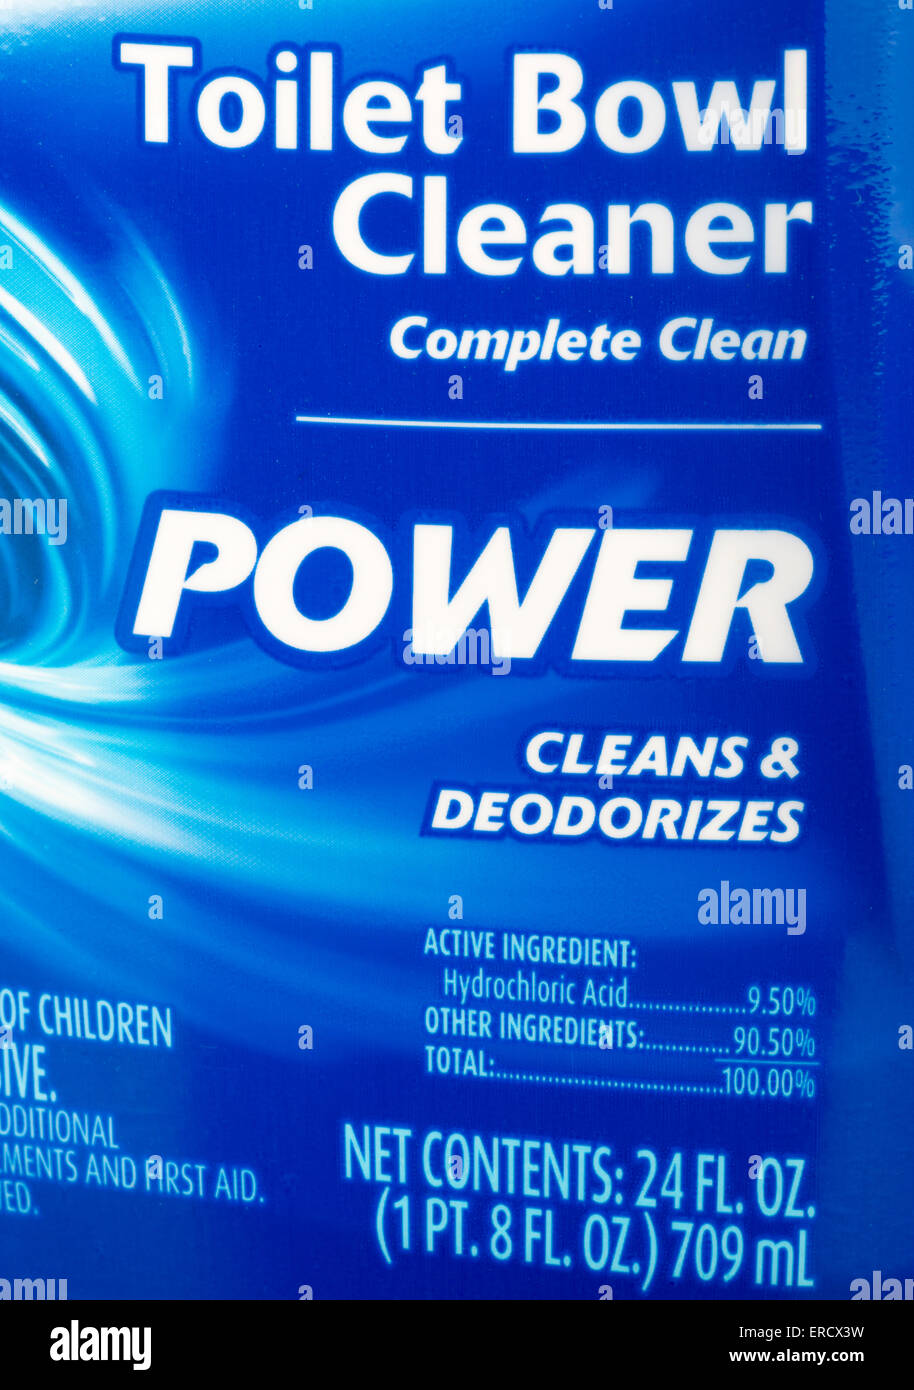 Toilet bowl cleaner label showing Hydrochloric Acid as the active ingredient - Stock Image